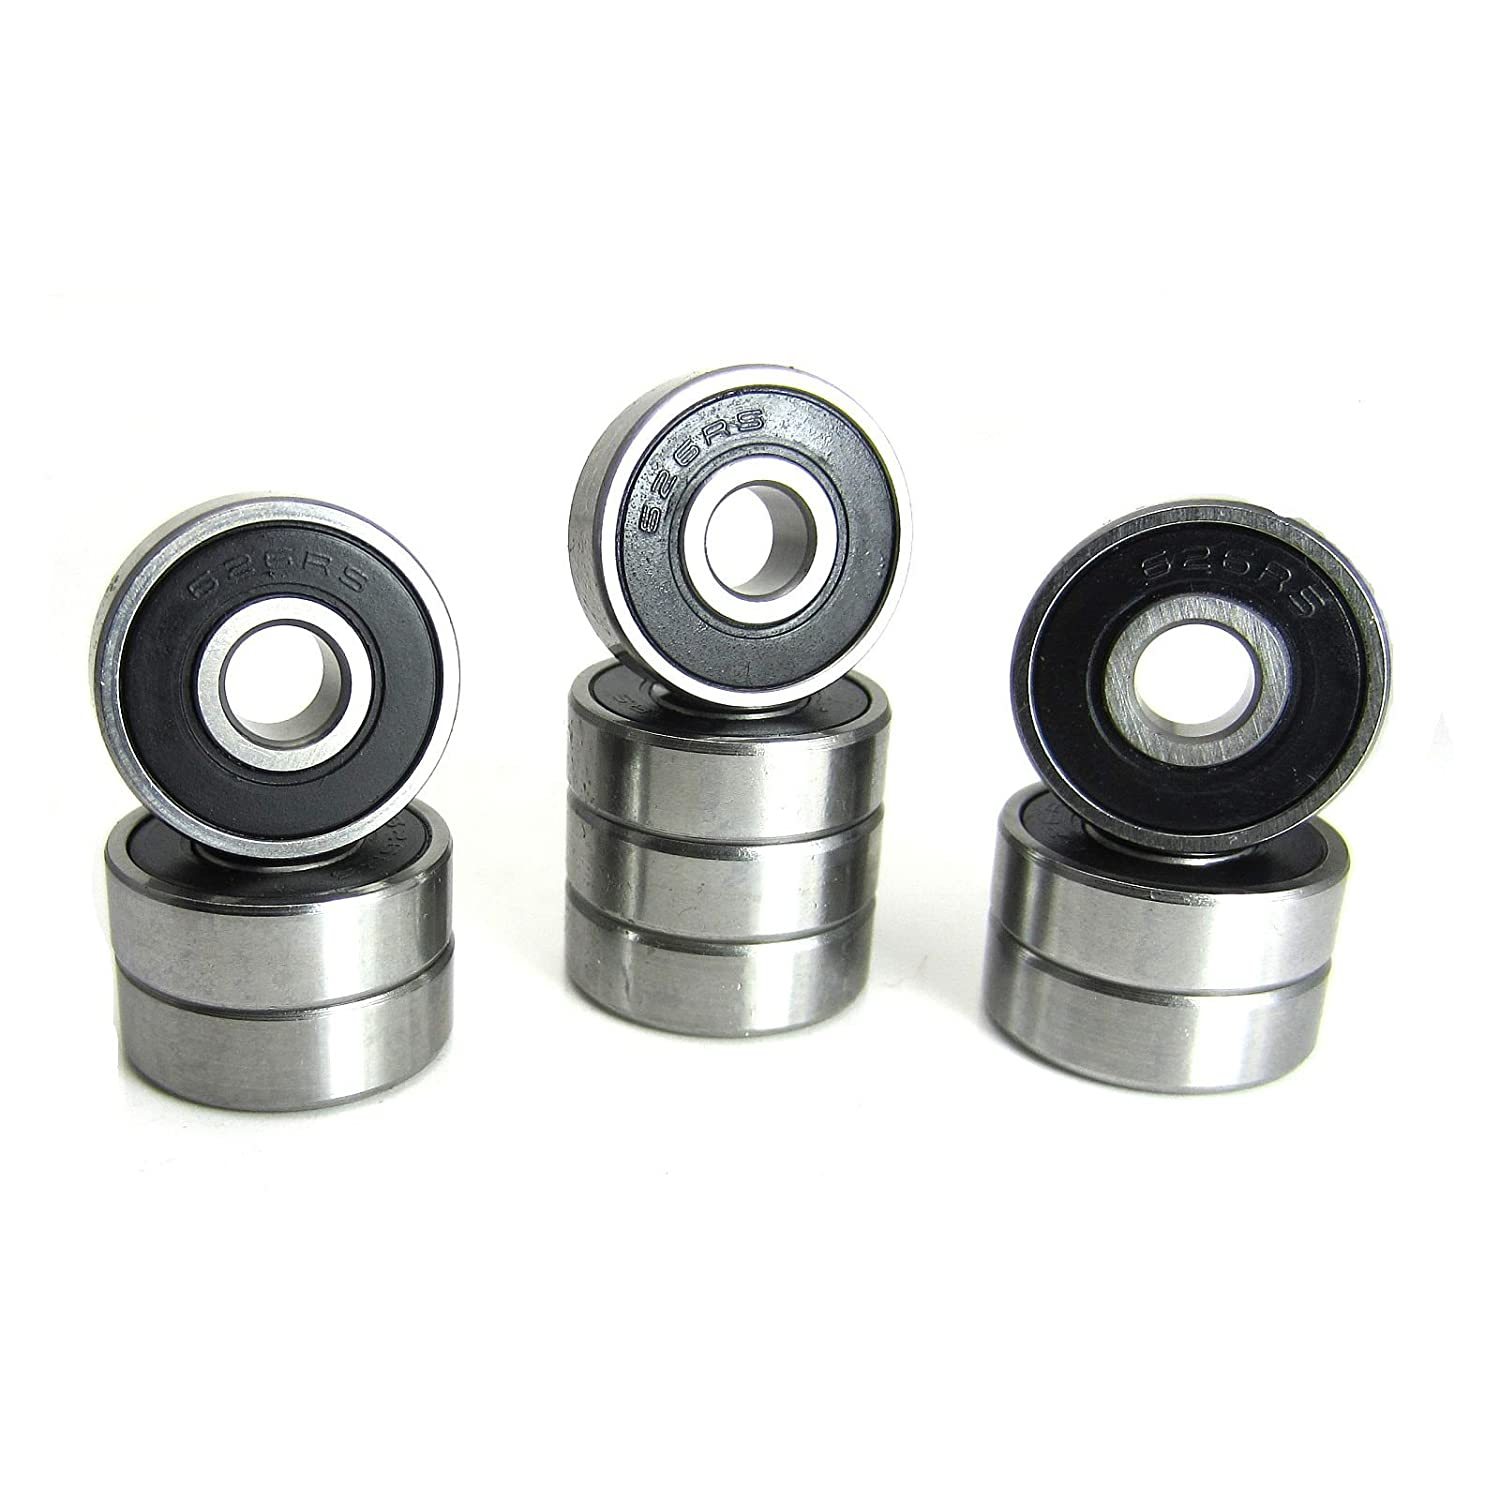 10 6x19x6mm Precision Ball Bearings ABEC 3 Rubber Seals 626 2RS